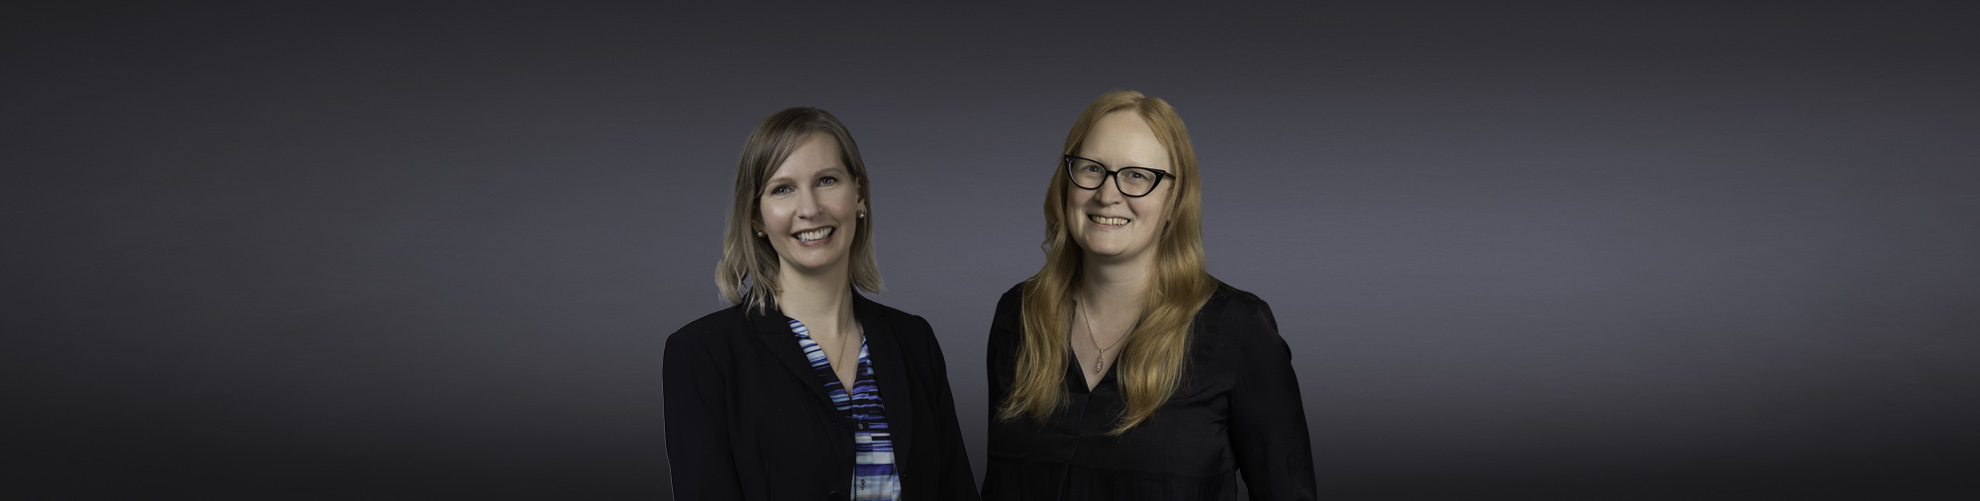 Marketing and Communications Team